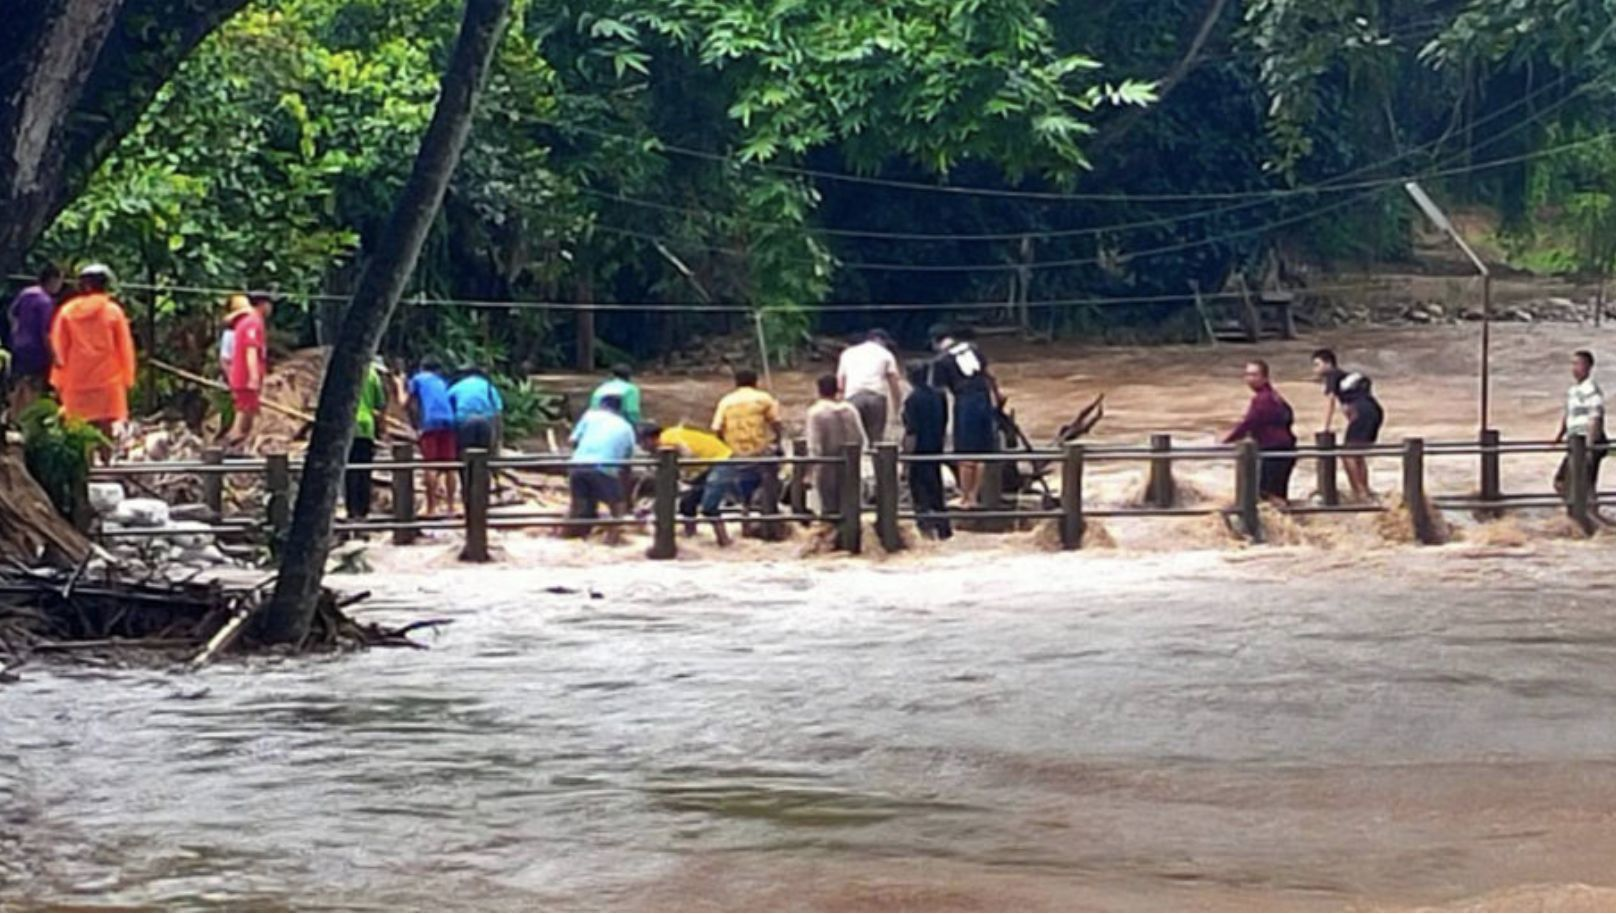 Floods cut off the main road between Chiang Mai and Chiang Rai | Thaiger